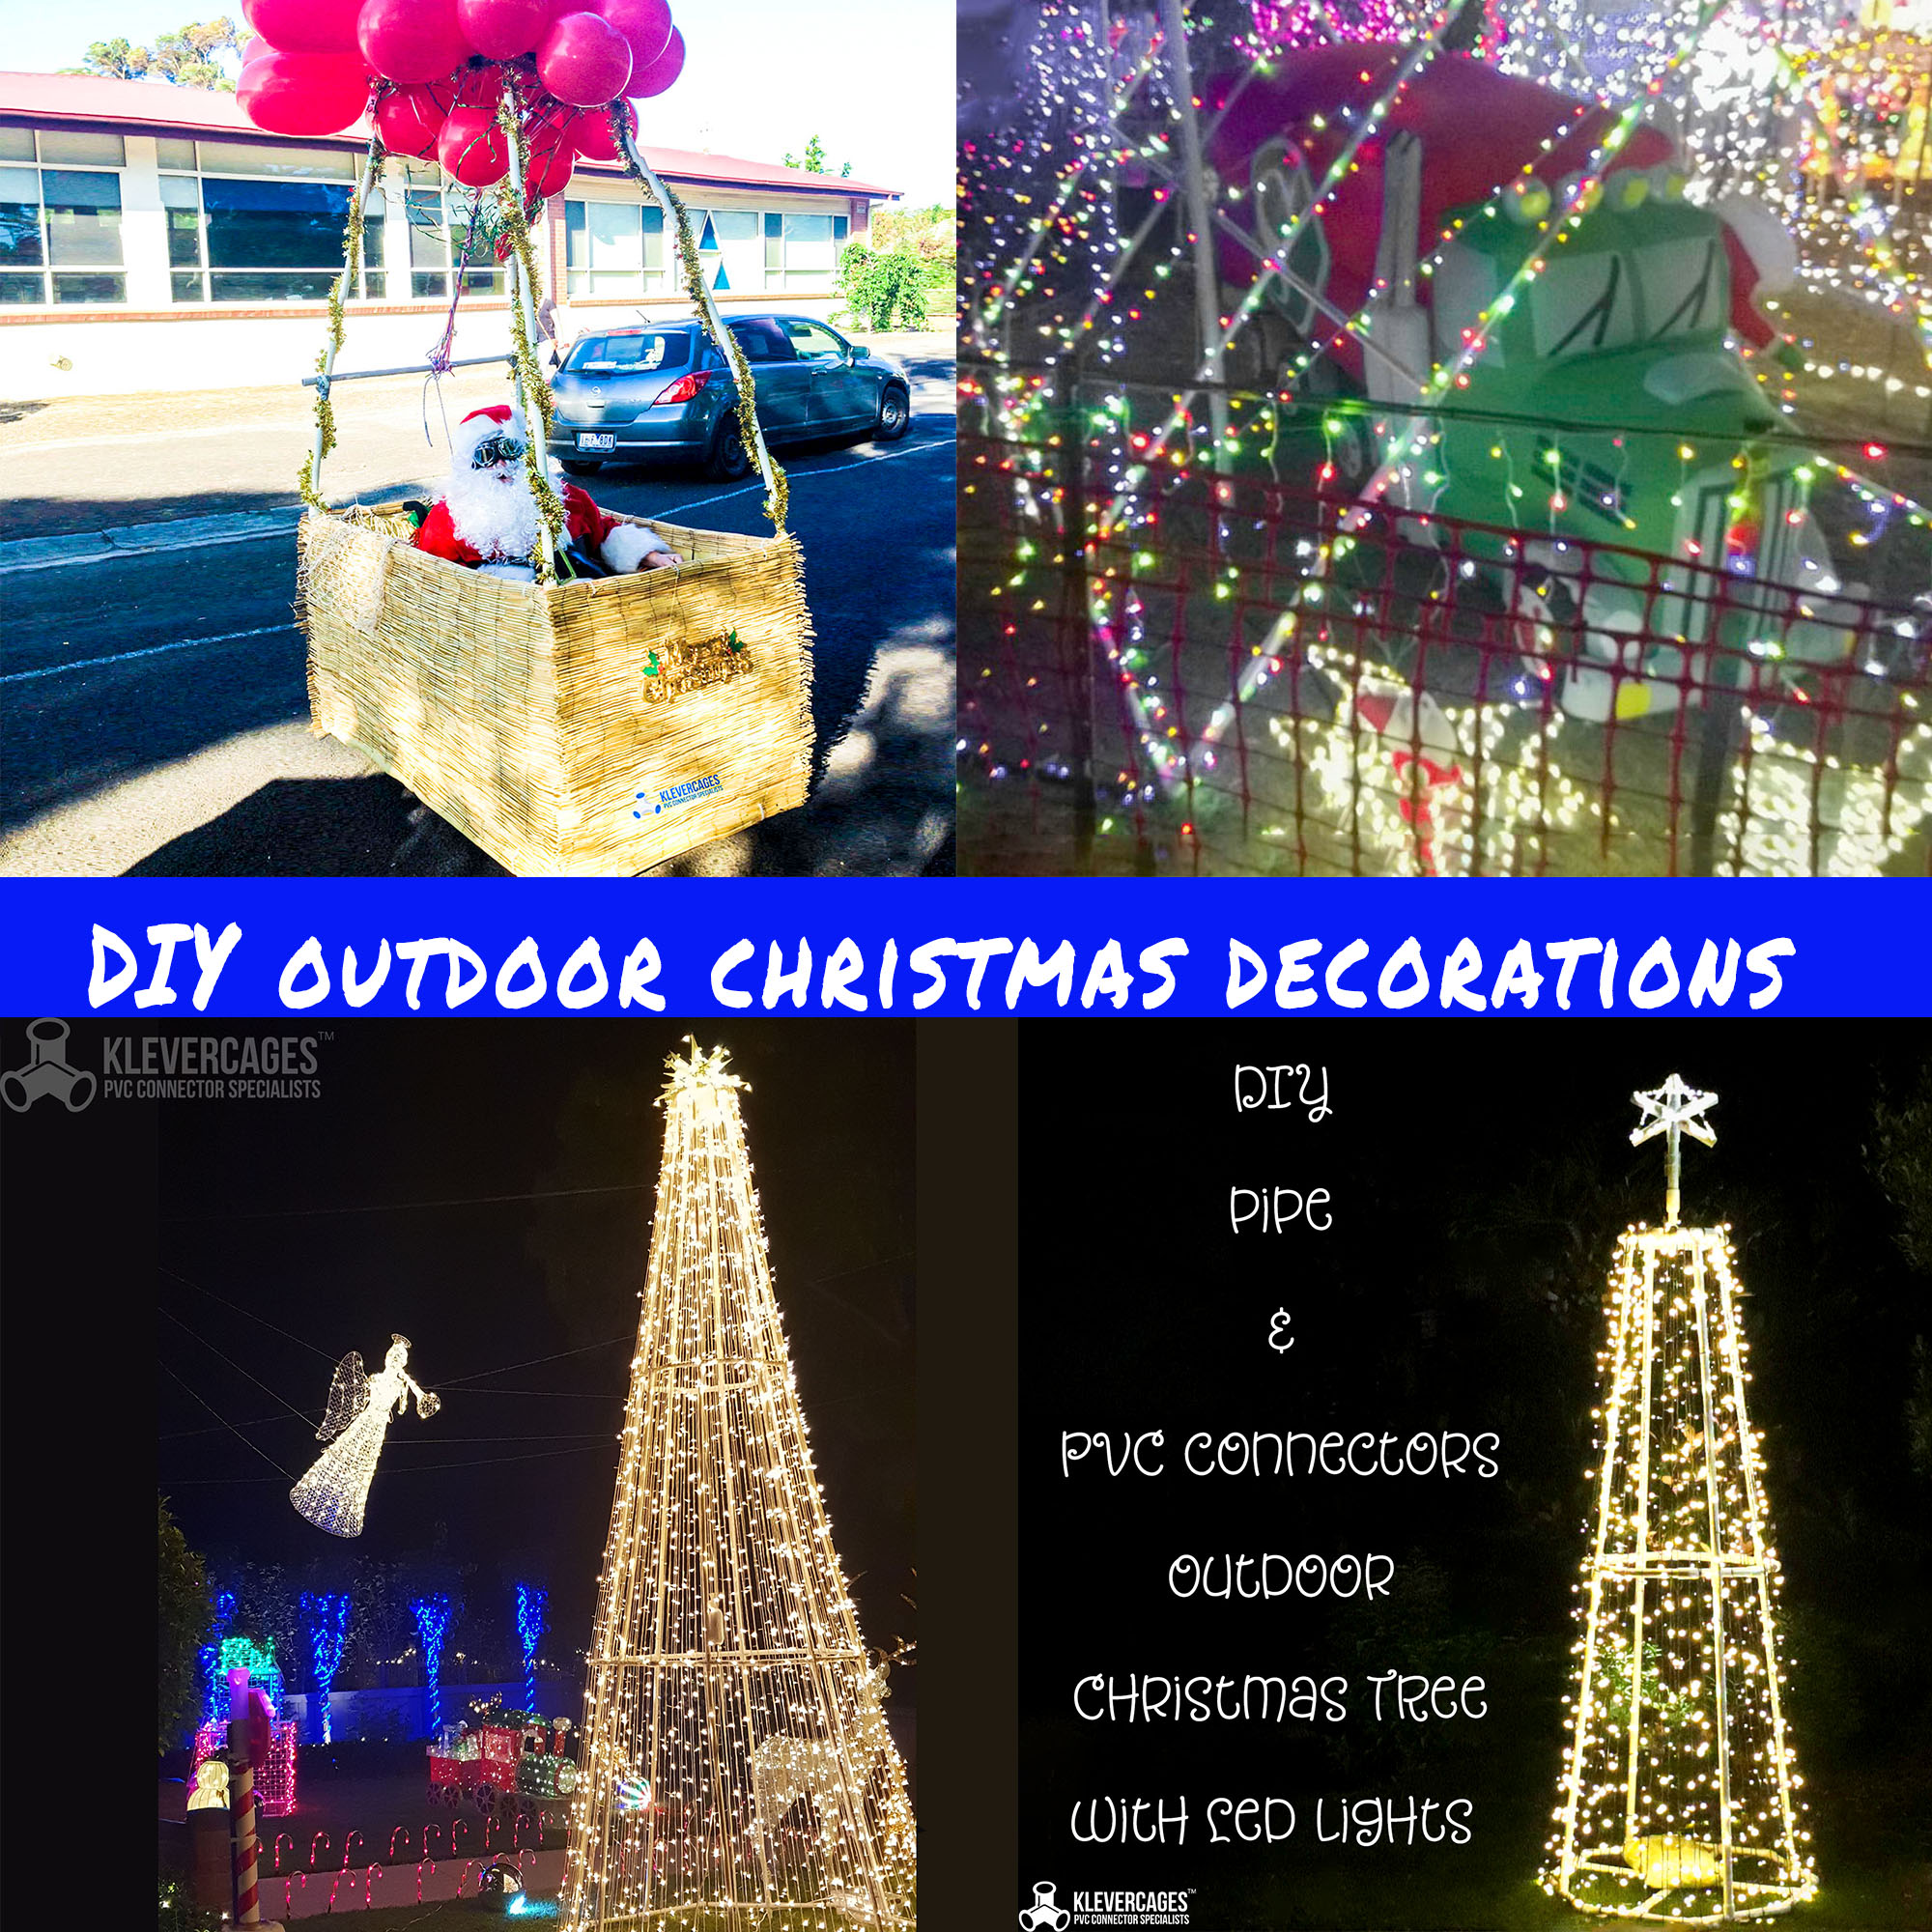 DIY outdoor Christmas decorations built with PVC connectors and pipe from Klever Cages